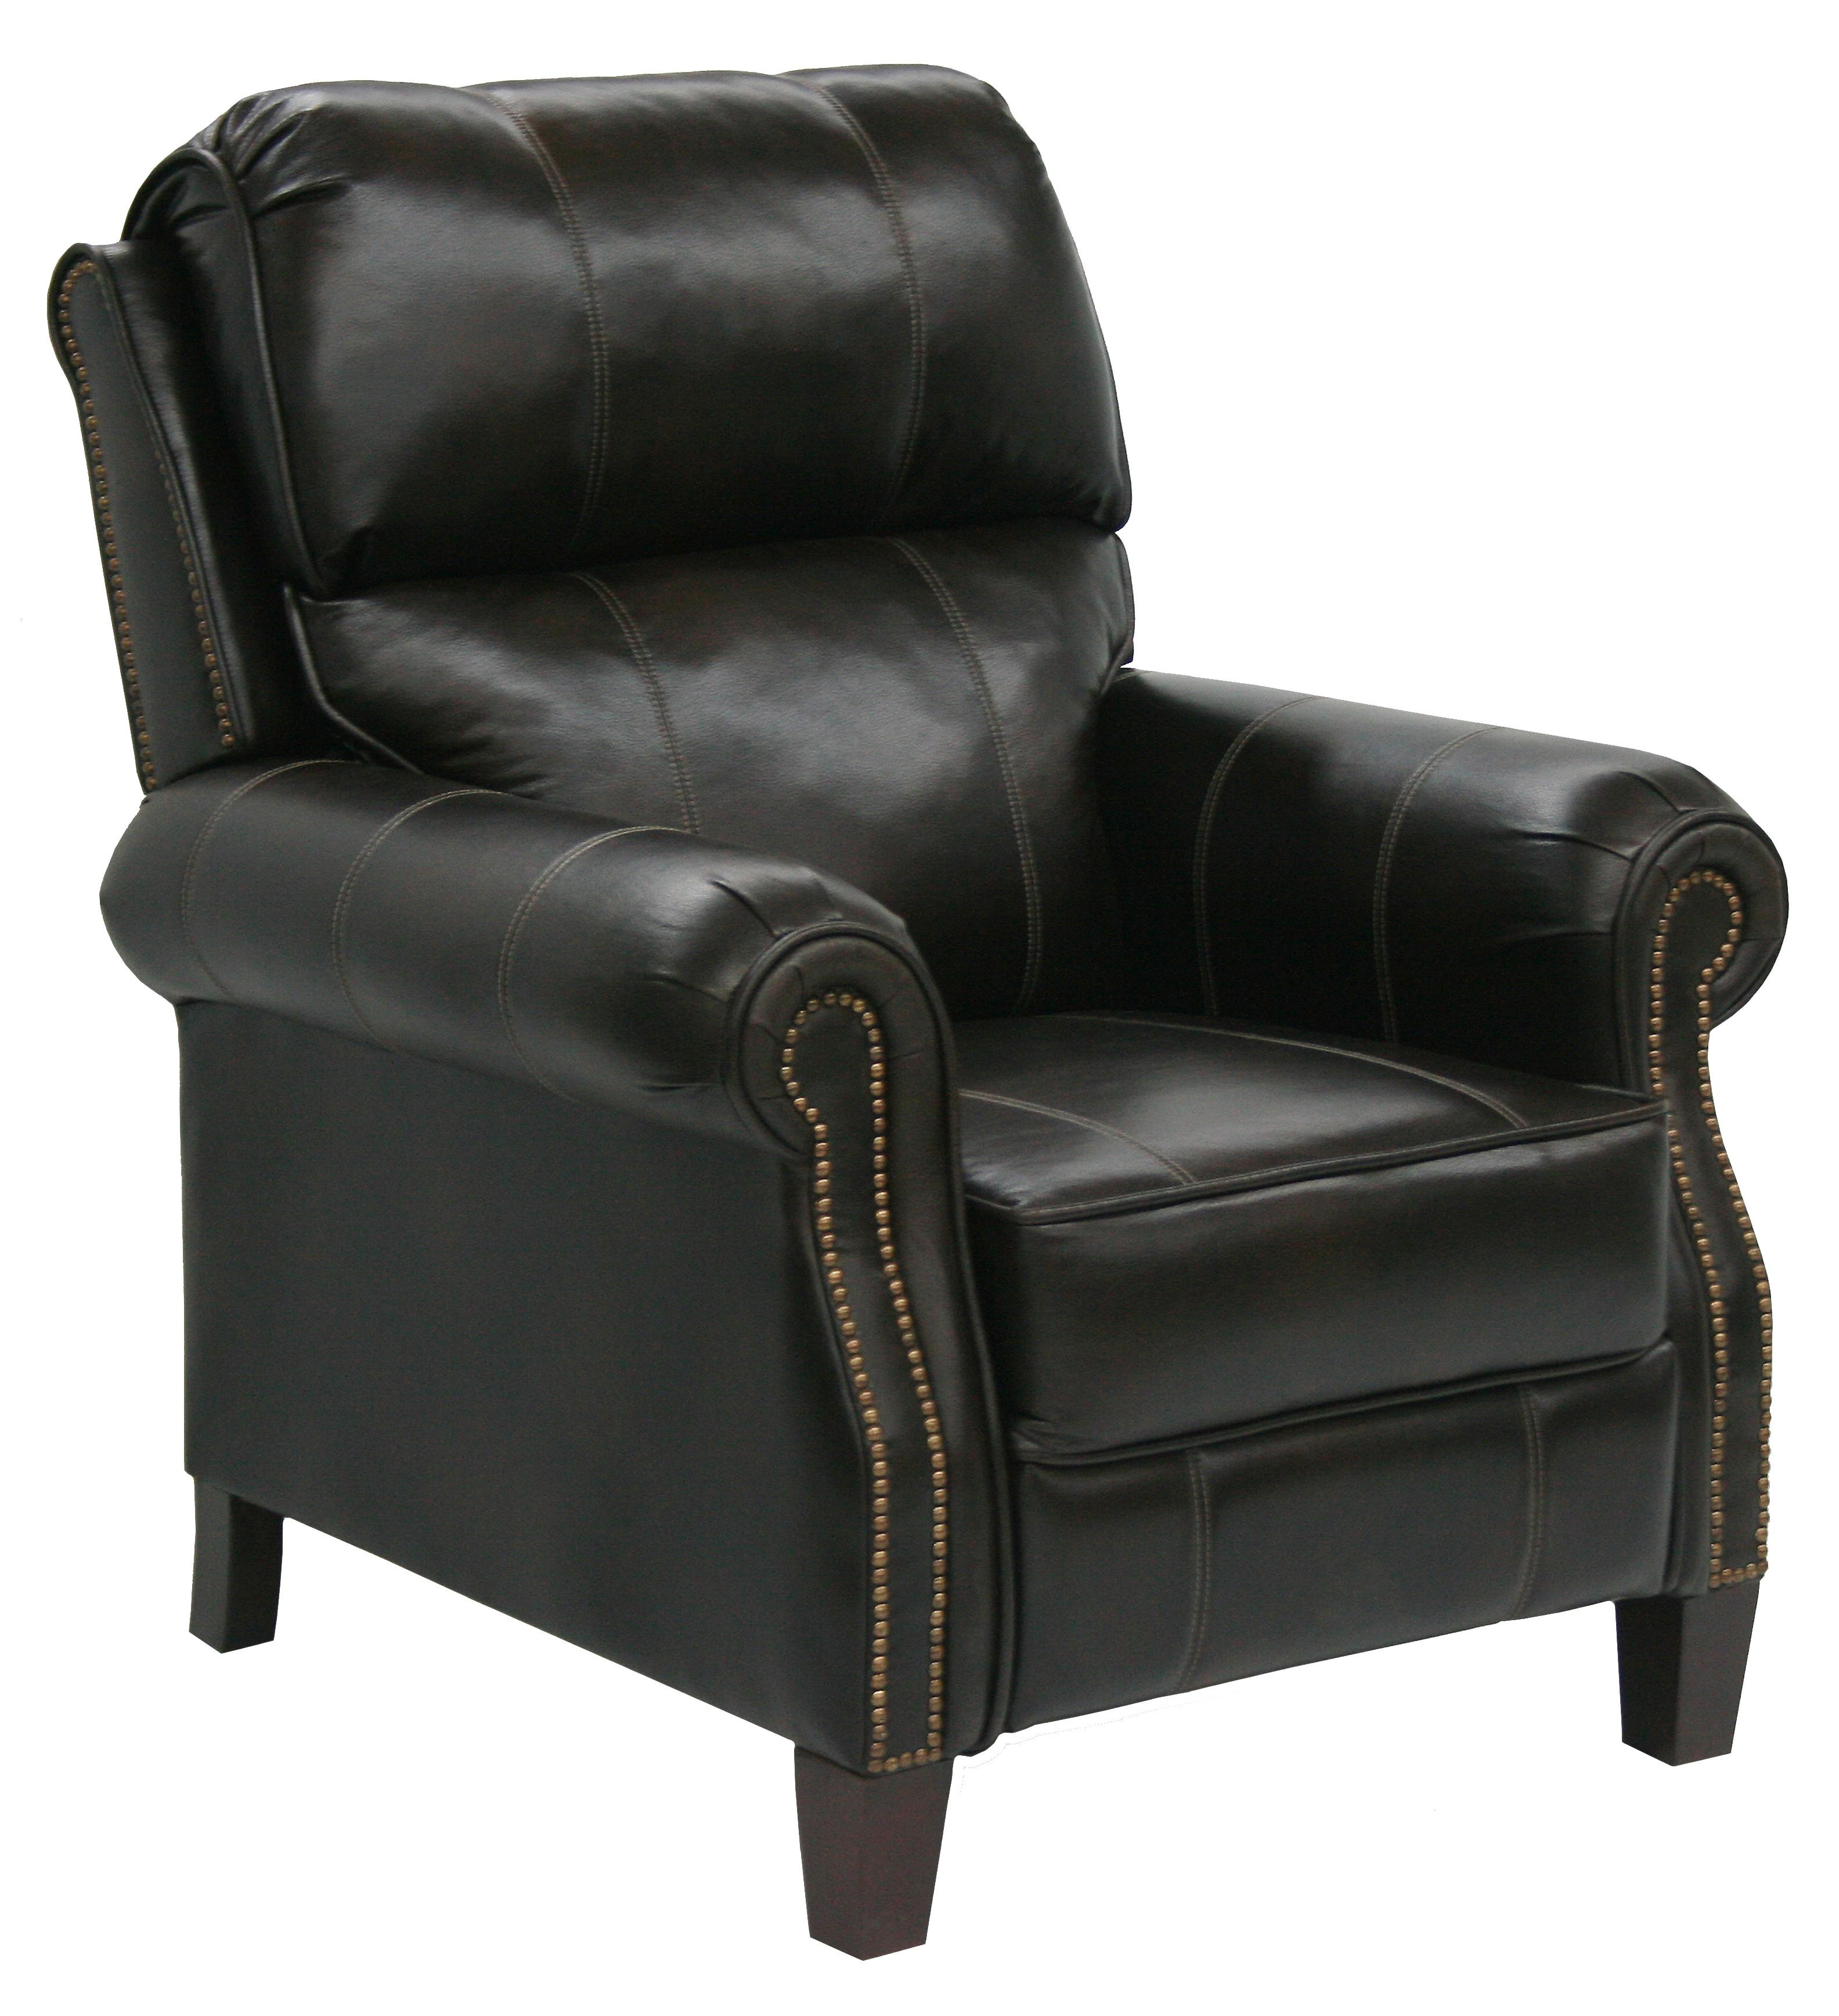 Catnapper Motion Chairs and Recliners Frazier Performance Fabric Recliner - Item Number 5539 1218-  sc 1 st  Great American Home Store & Catnapper Motion Chairs and Recliners Frazier Push Back ... islam-shia.org